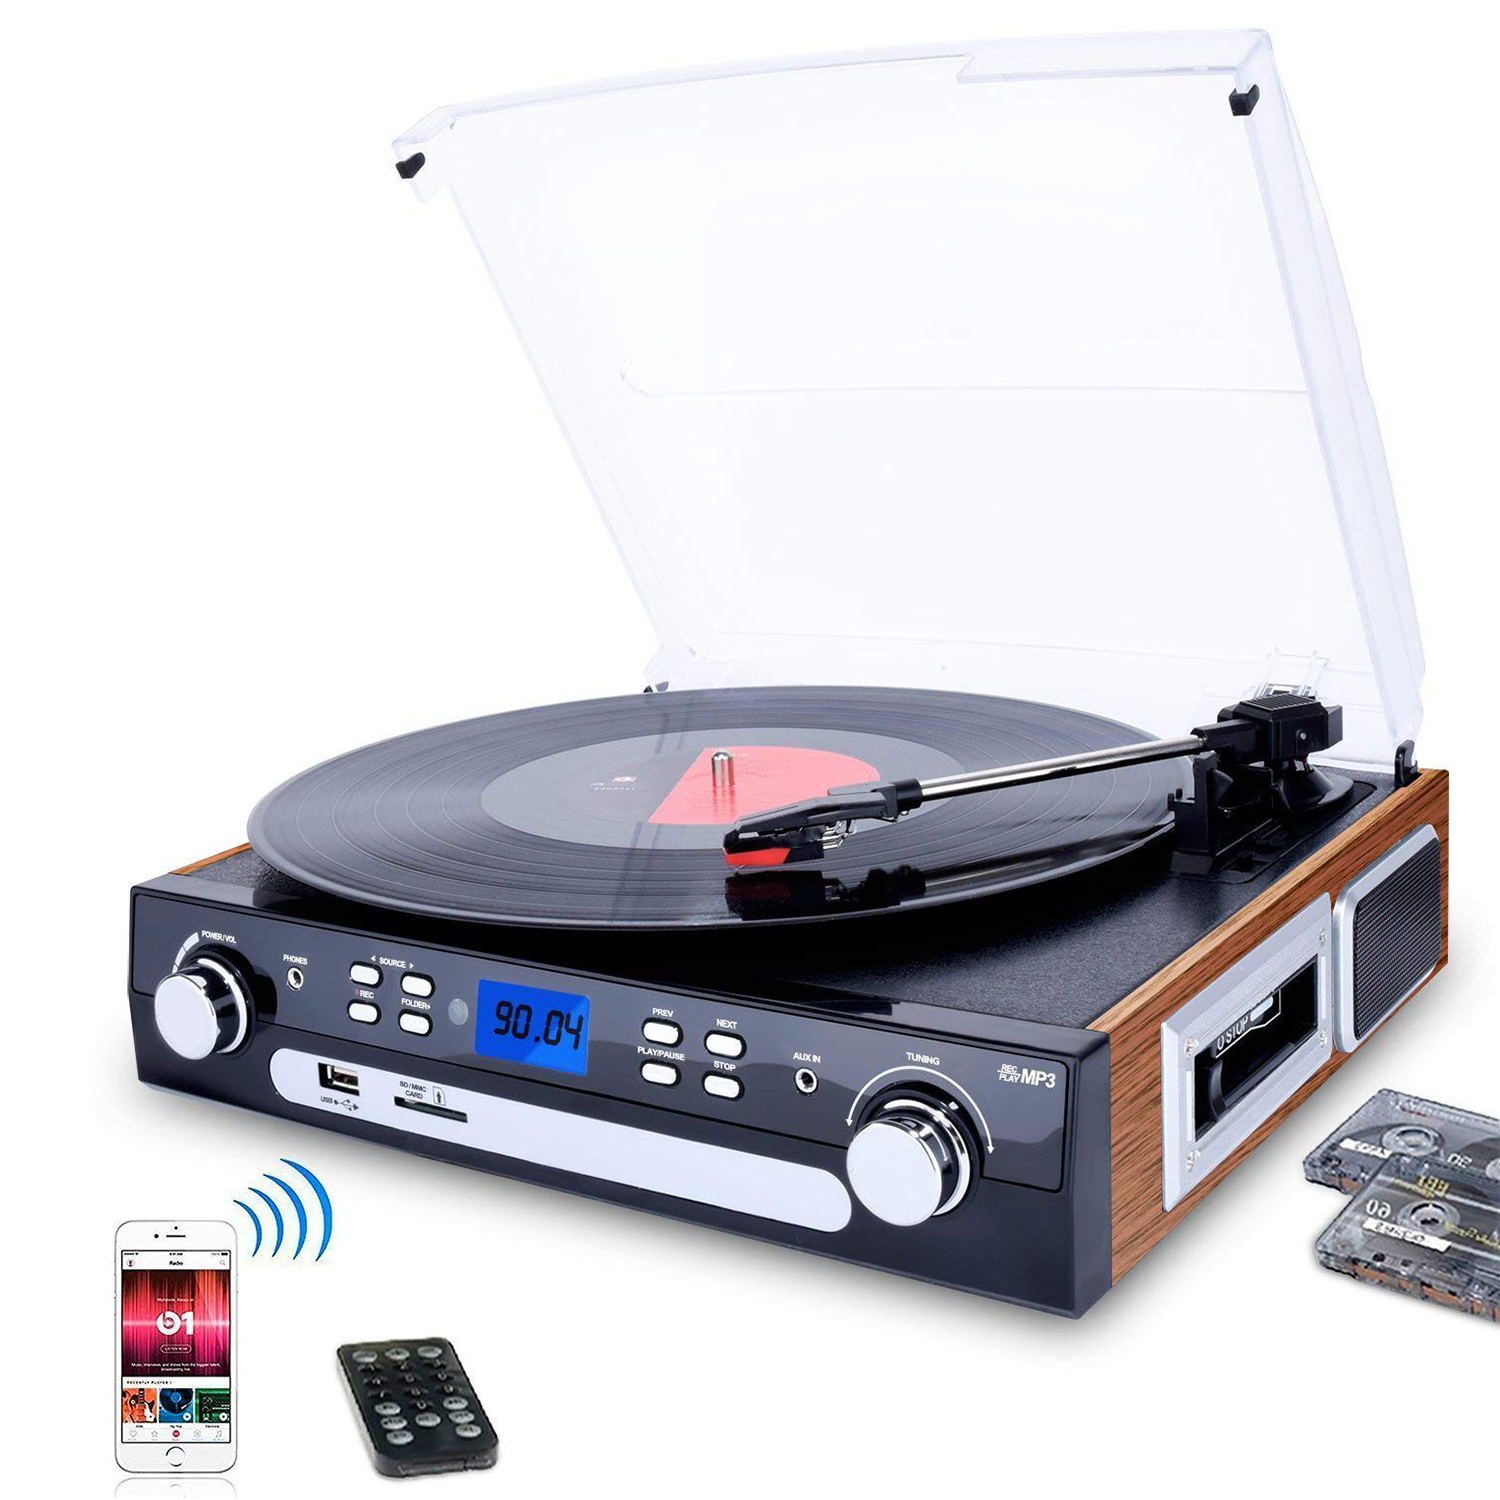 DIGITNOW! Bluetooth Record Player with Stereo Speakers, Turntable for Vinyl  to MP3 with Cassette Play, AM/FM Radio, Remote Control, USB/SD Encoding,